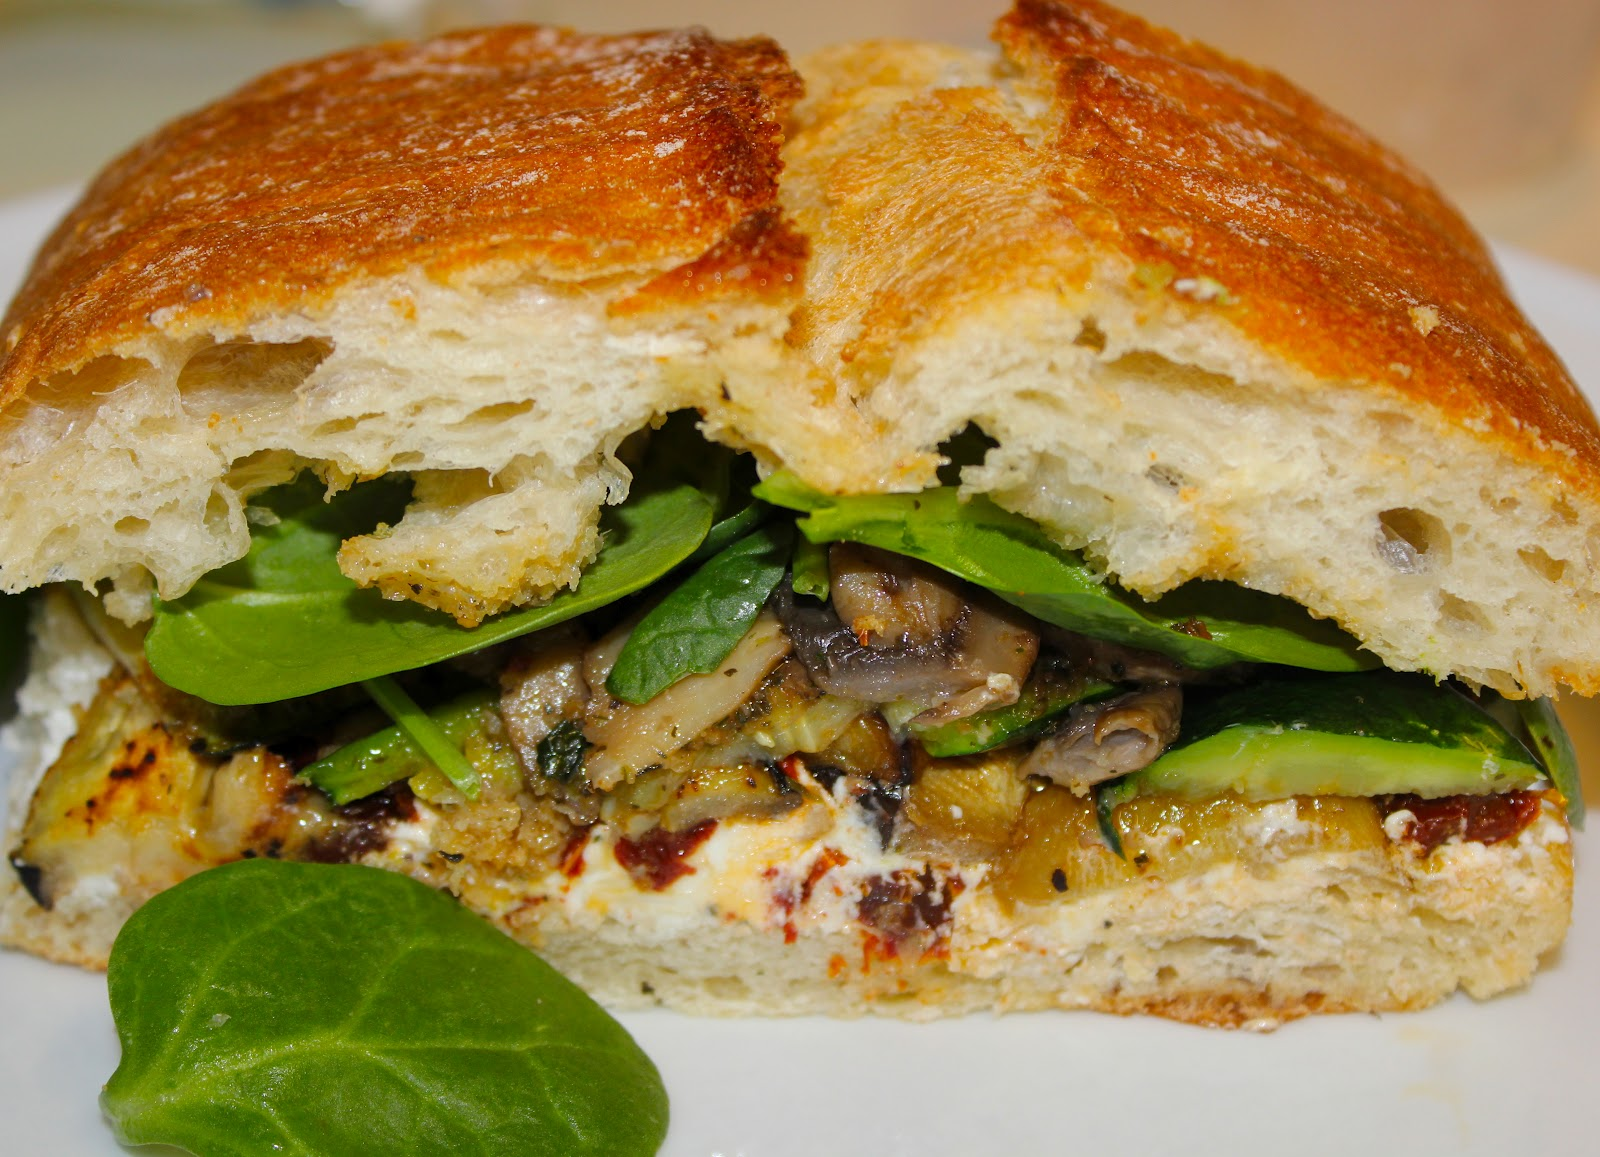 Smart-Bottom Enterprises: Vegetable and Goat Cheese Sandwiches